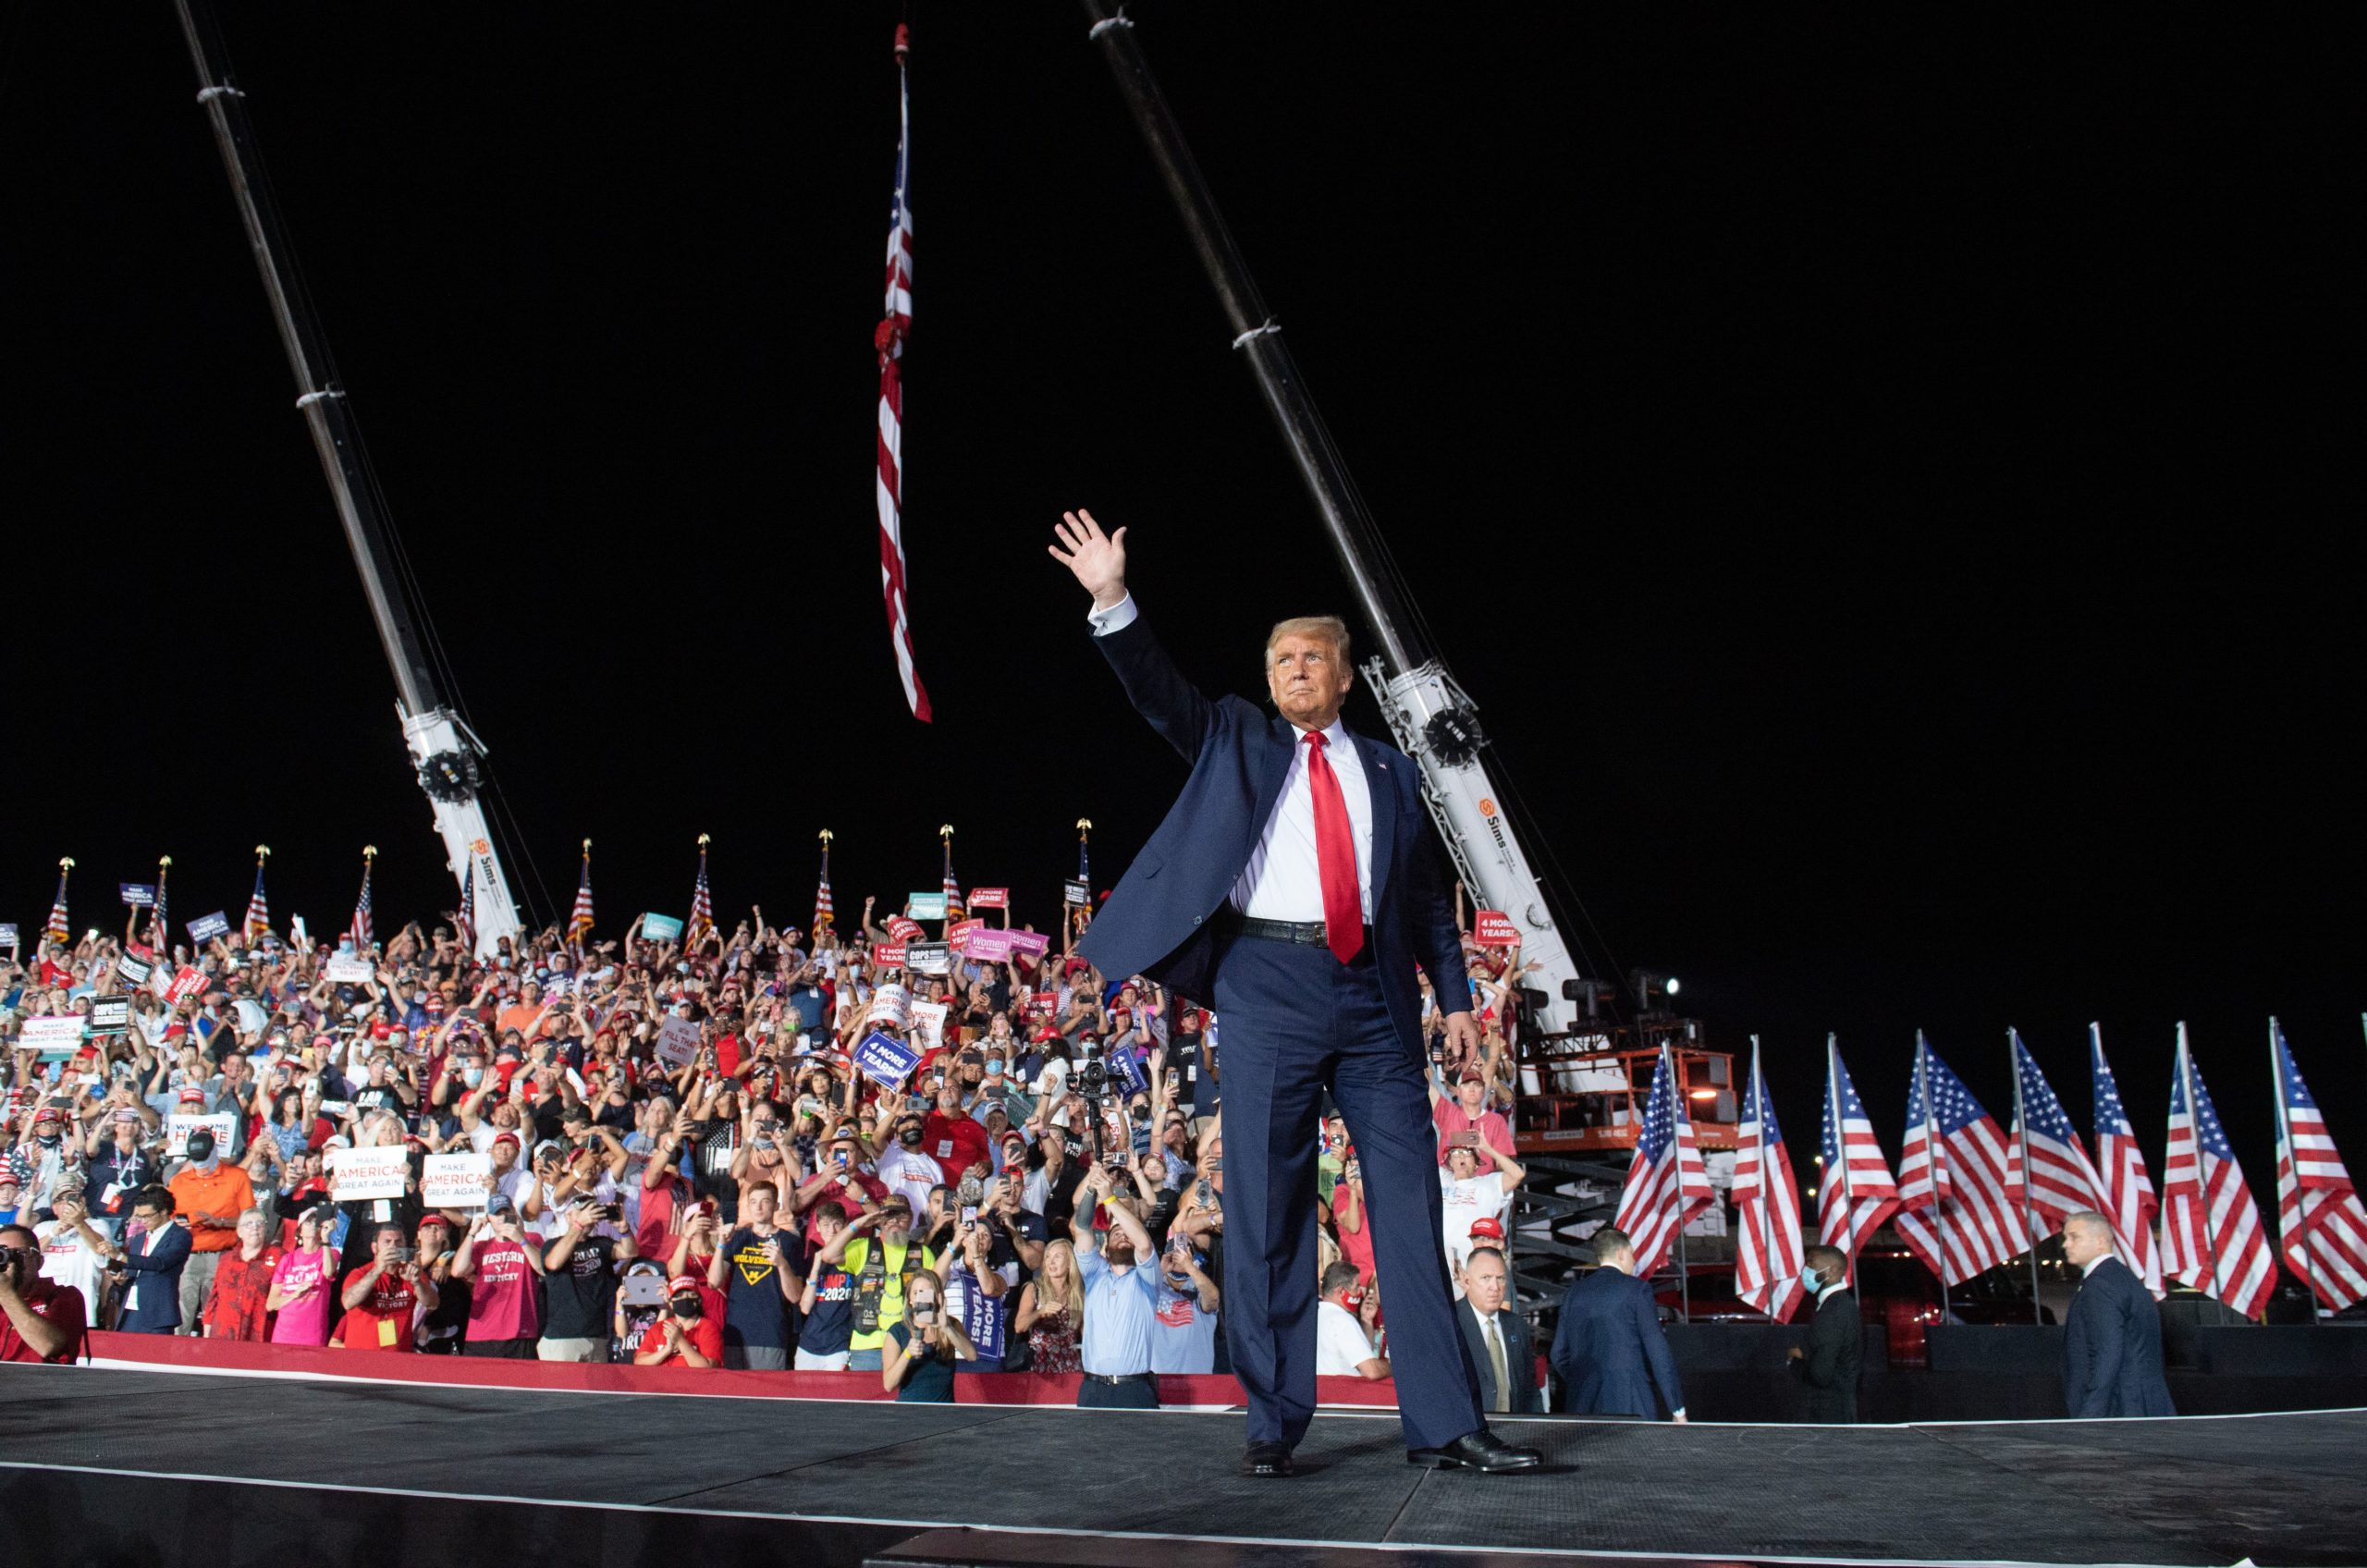 US President Donald Trump holds a Make America Great Again rally as he campaigns at Orlando Sanford International Airport in Sanford, Florida, October 12, 2020. (Photo by SAUL LOEB/AFP via Getty Images)